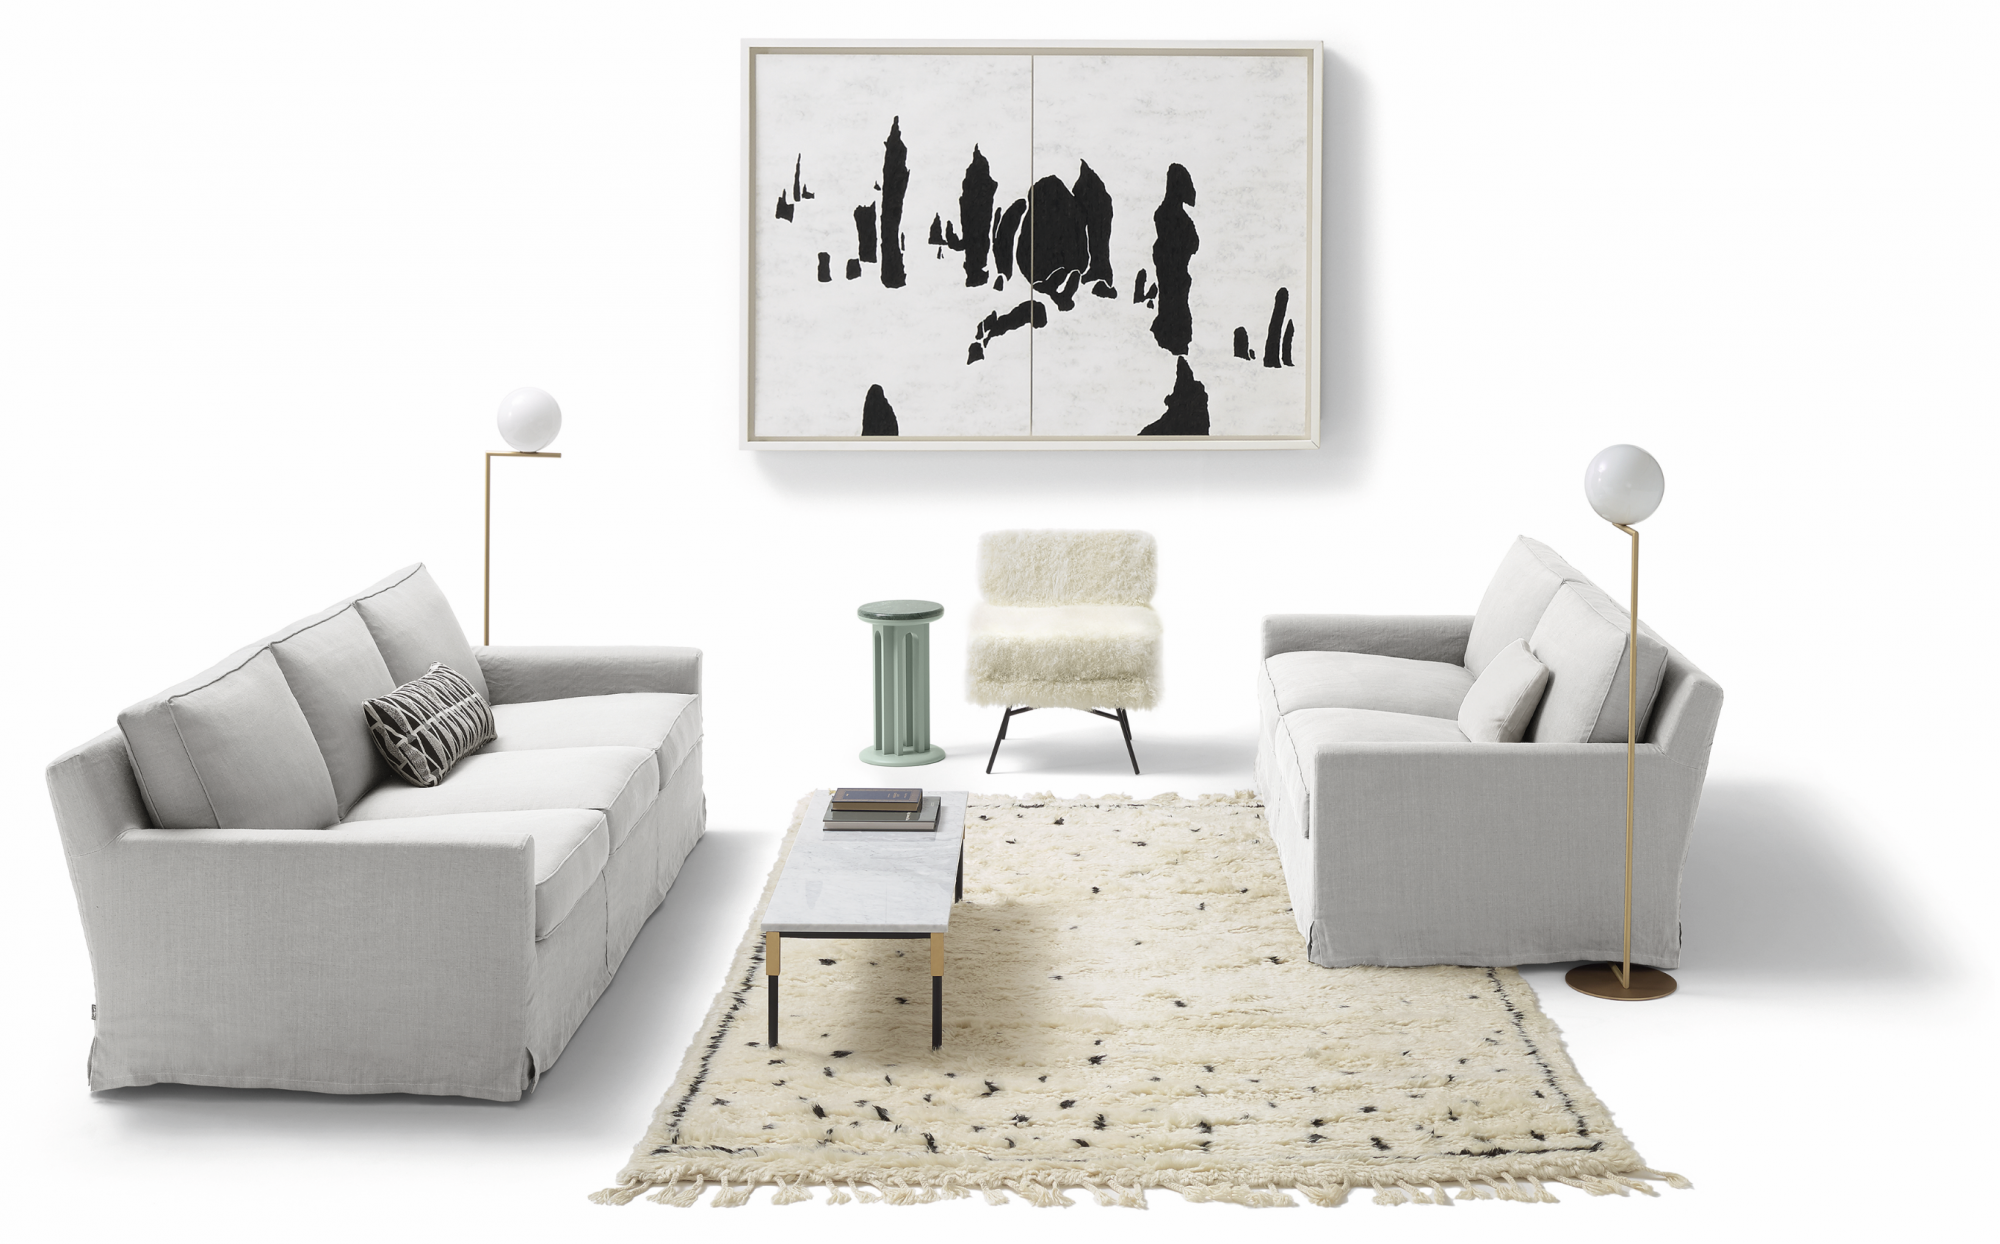 Tokyo Chic 7 Key Collections For A Minimalist Living Room Tatler Singapore